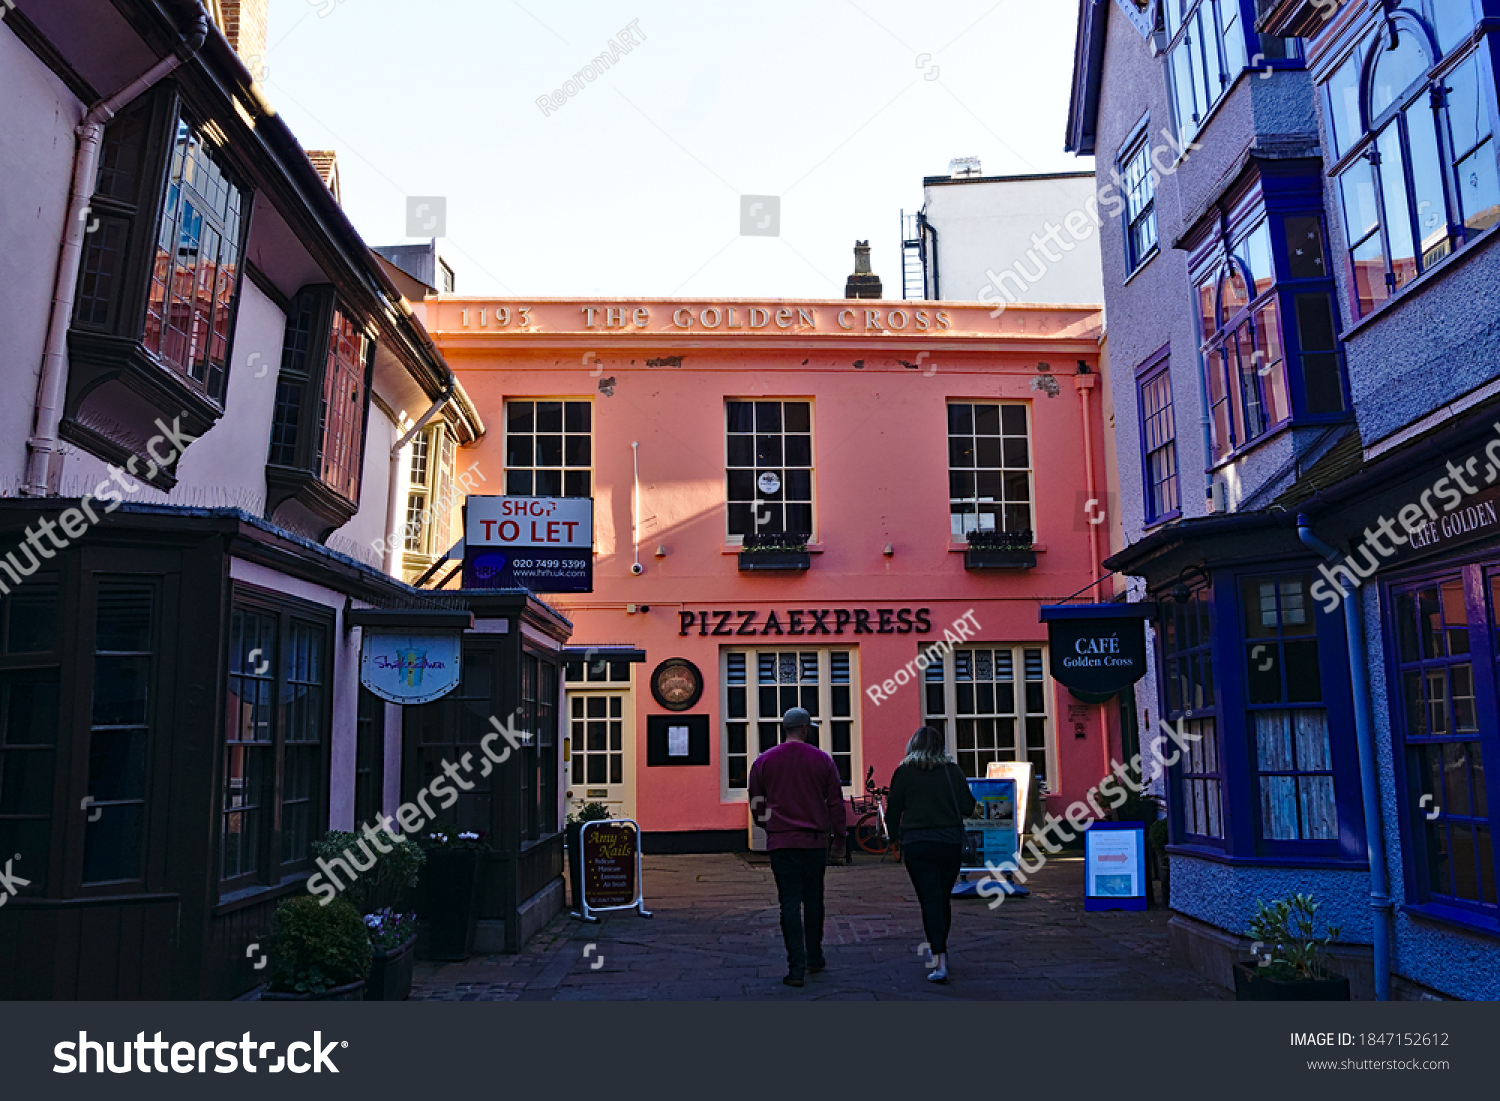 Pizzaexpress, Pinnk color building next to Covered Market, Oxford,England on 22/11/2019.